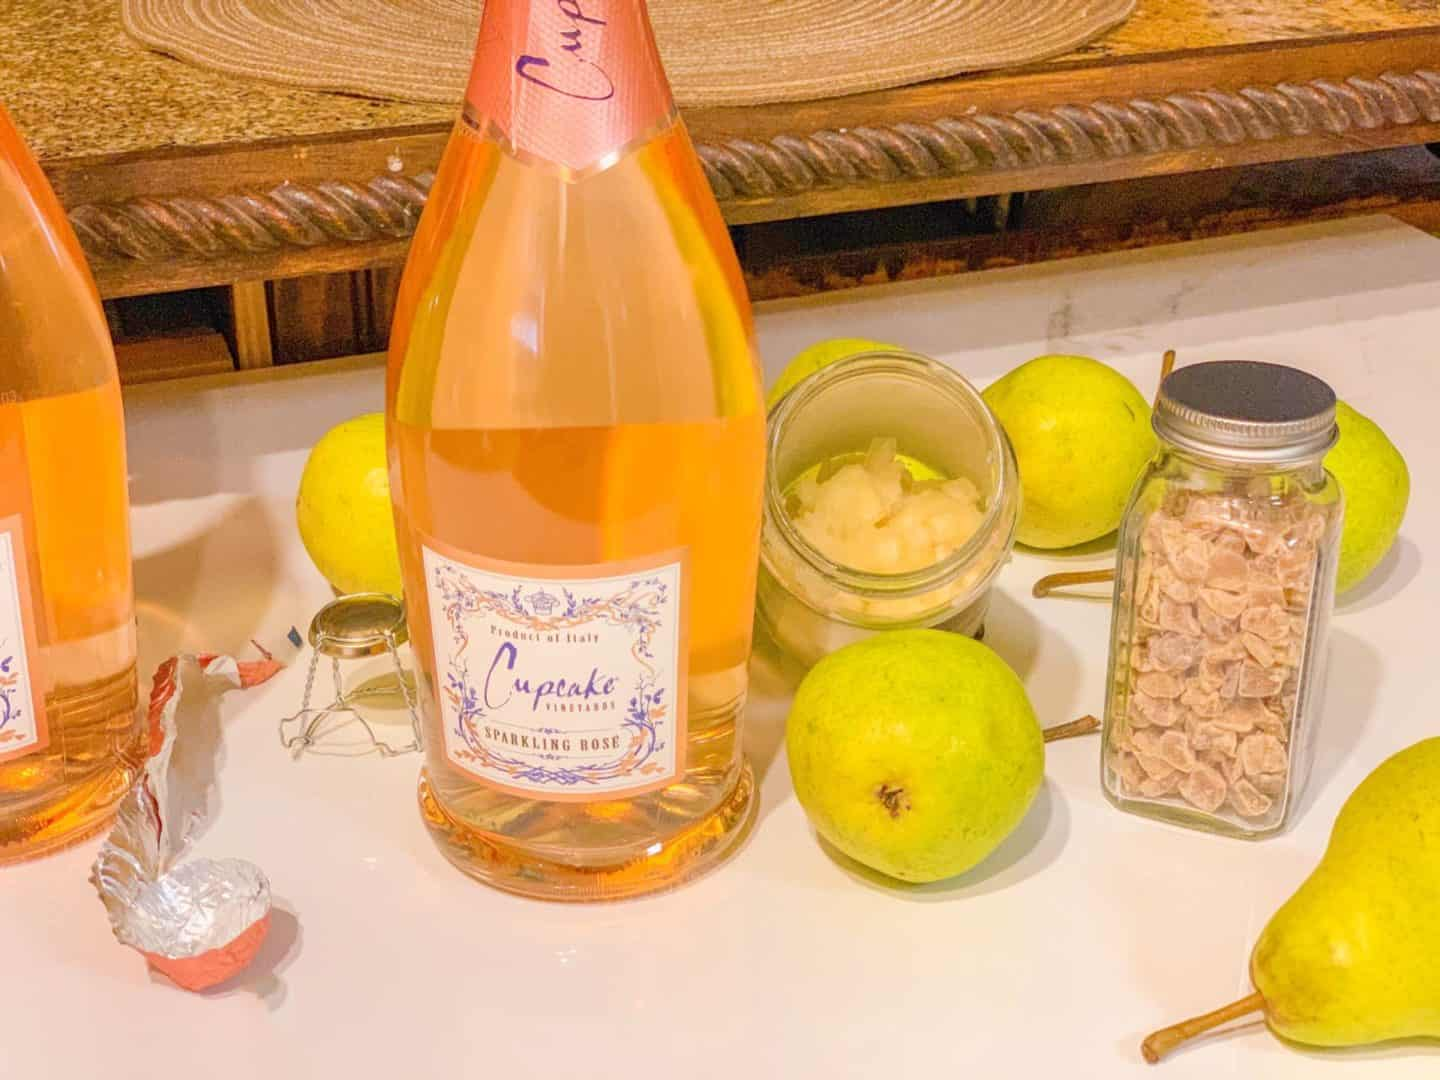 Make This: Easy Holiday Sparkling Rosé Cocktail - Ginger & A Pear Tree